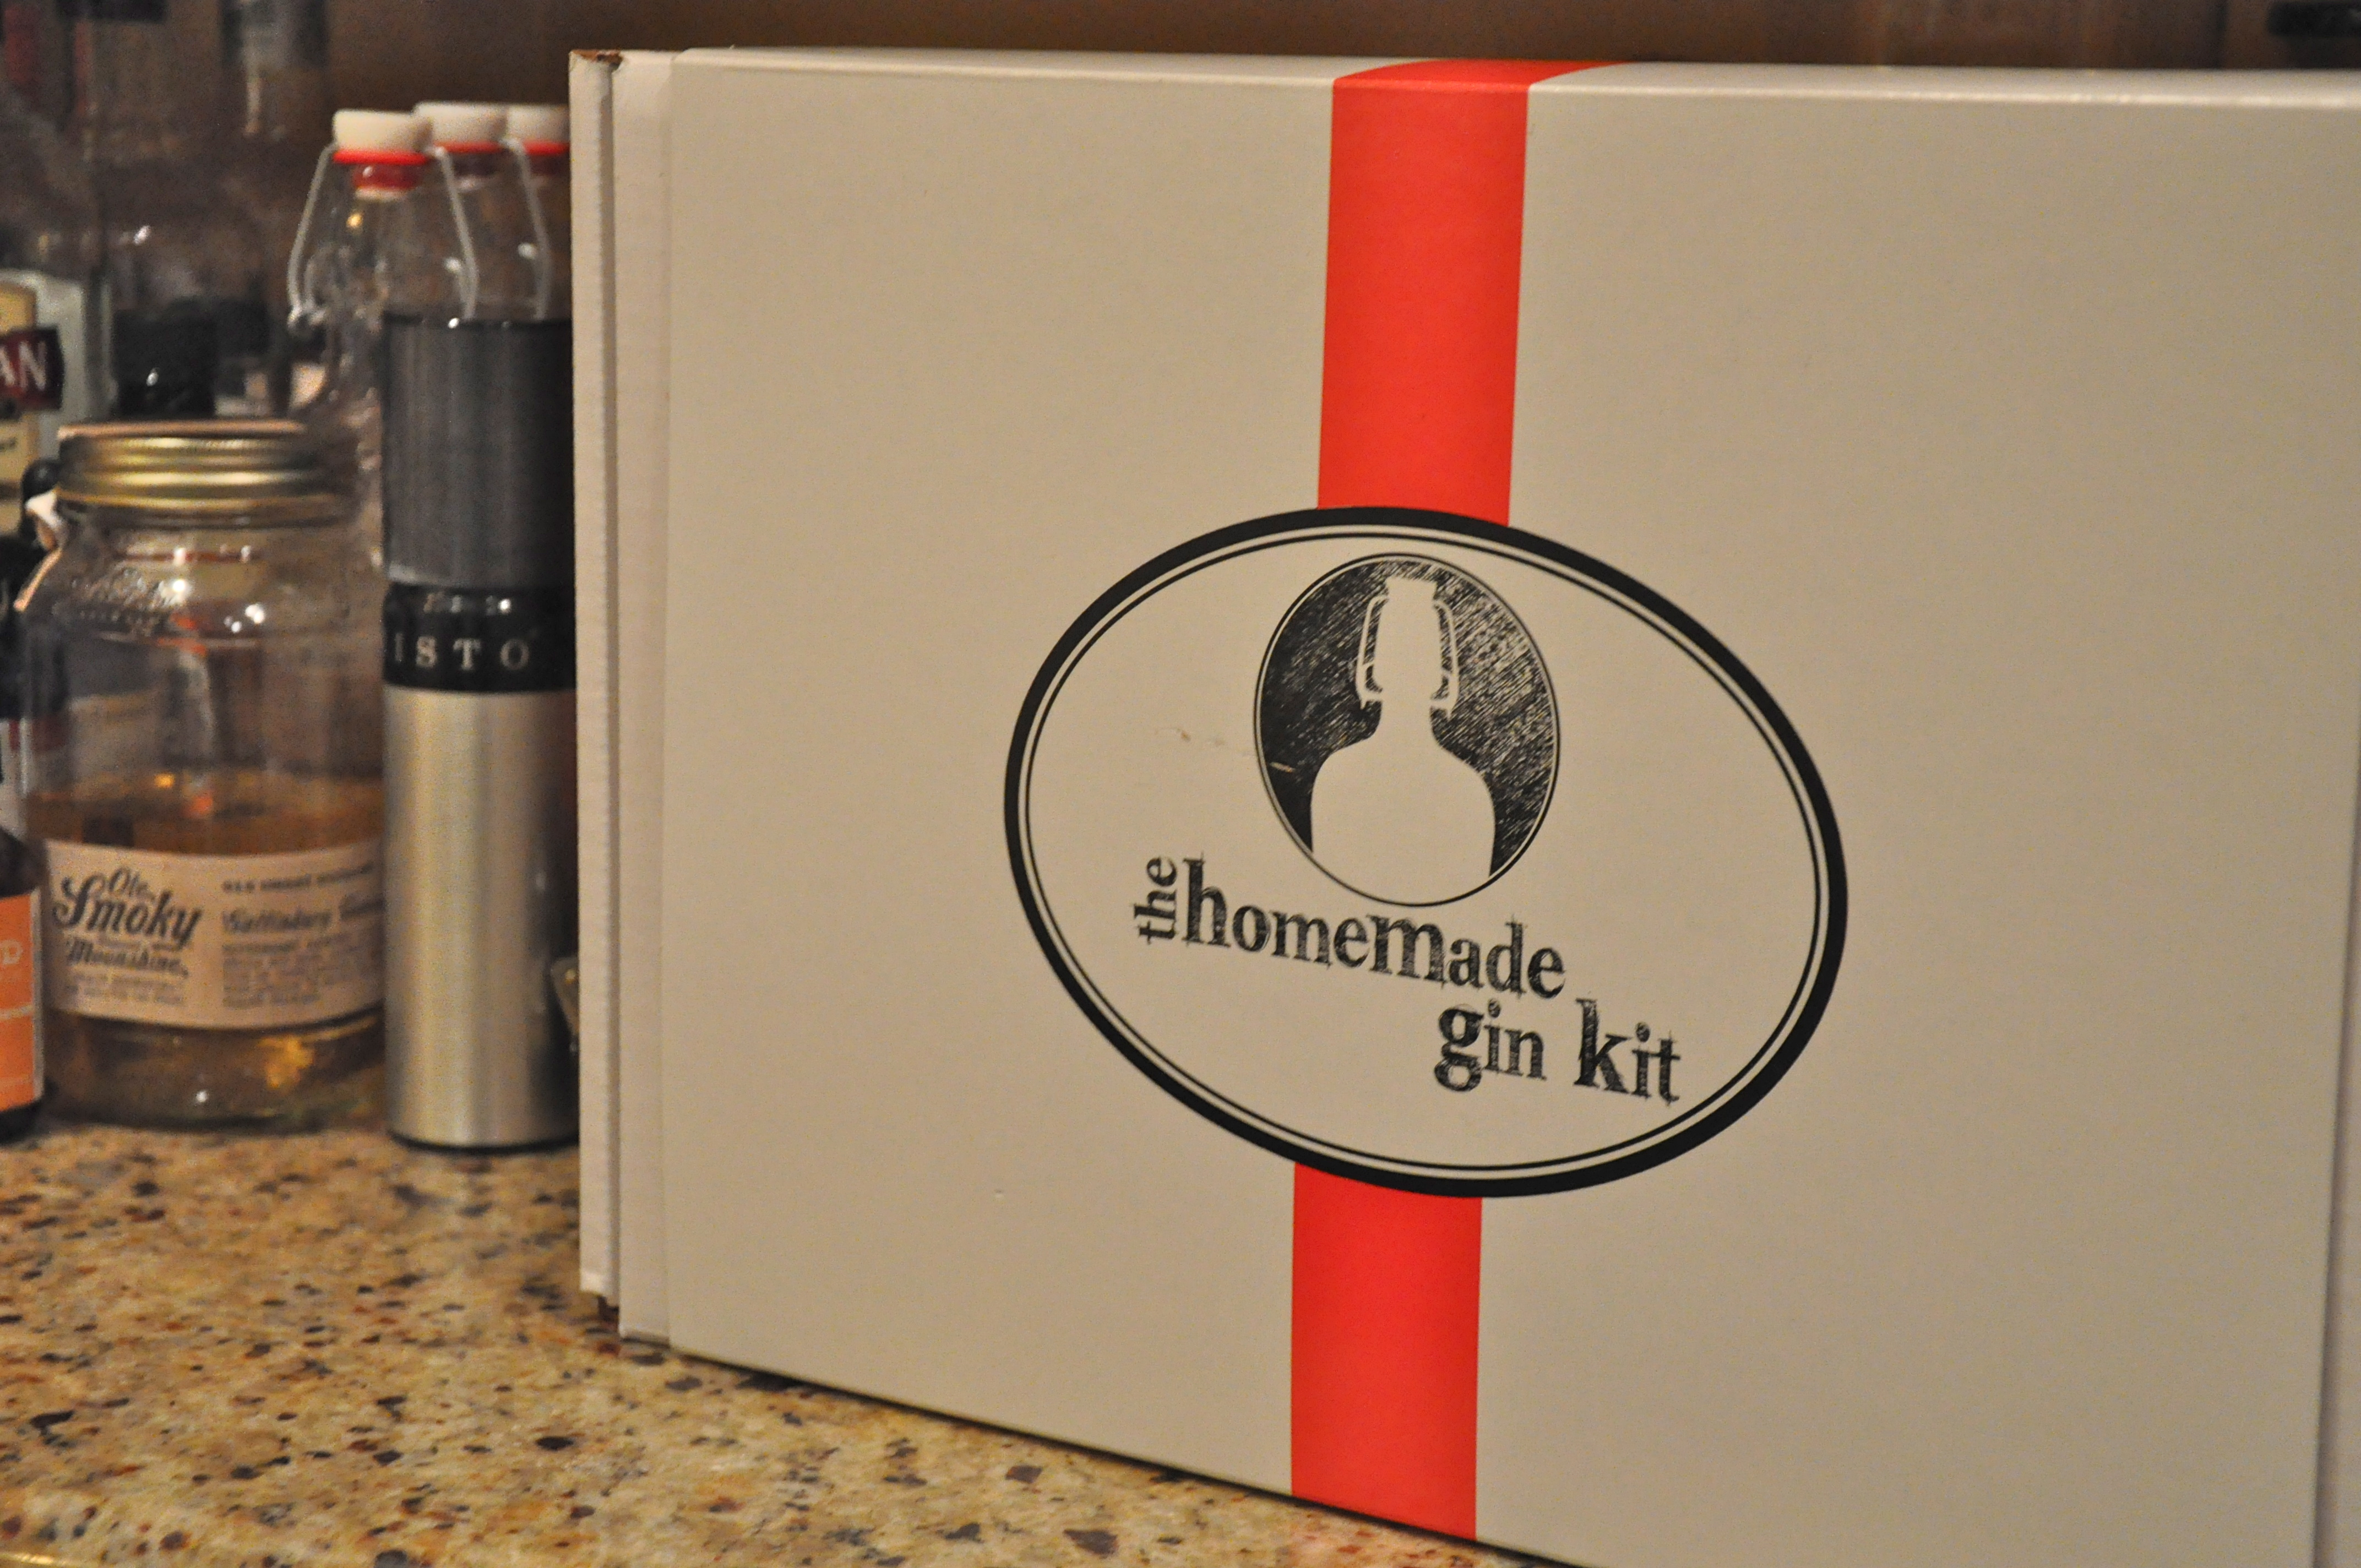 The Homemade Gin Kit: Building a business on booze